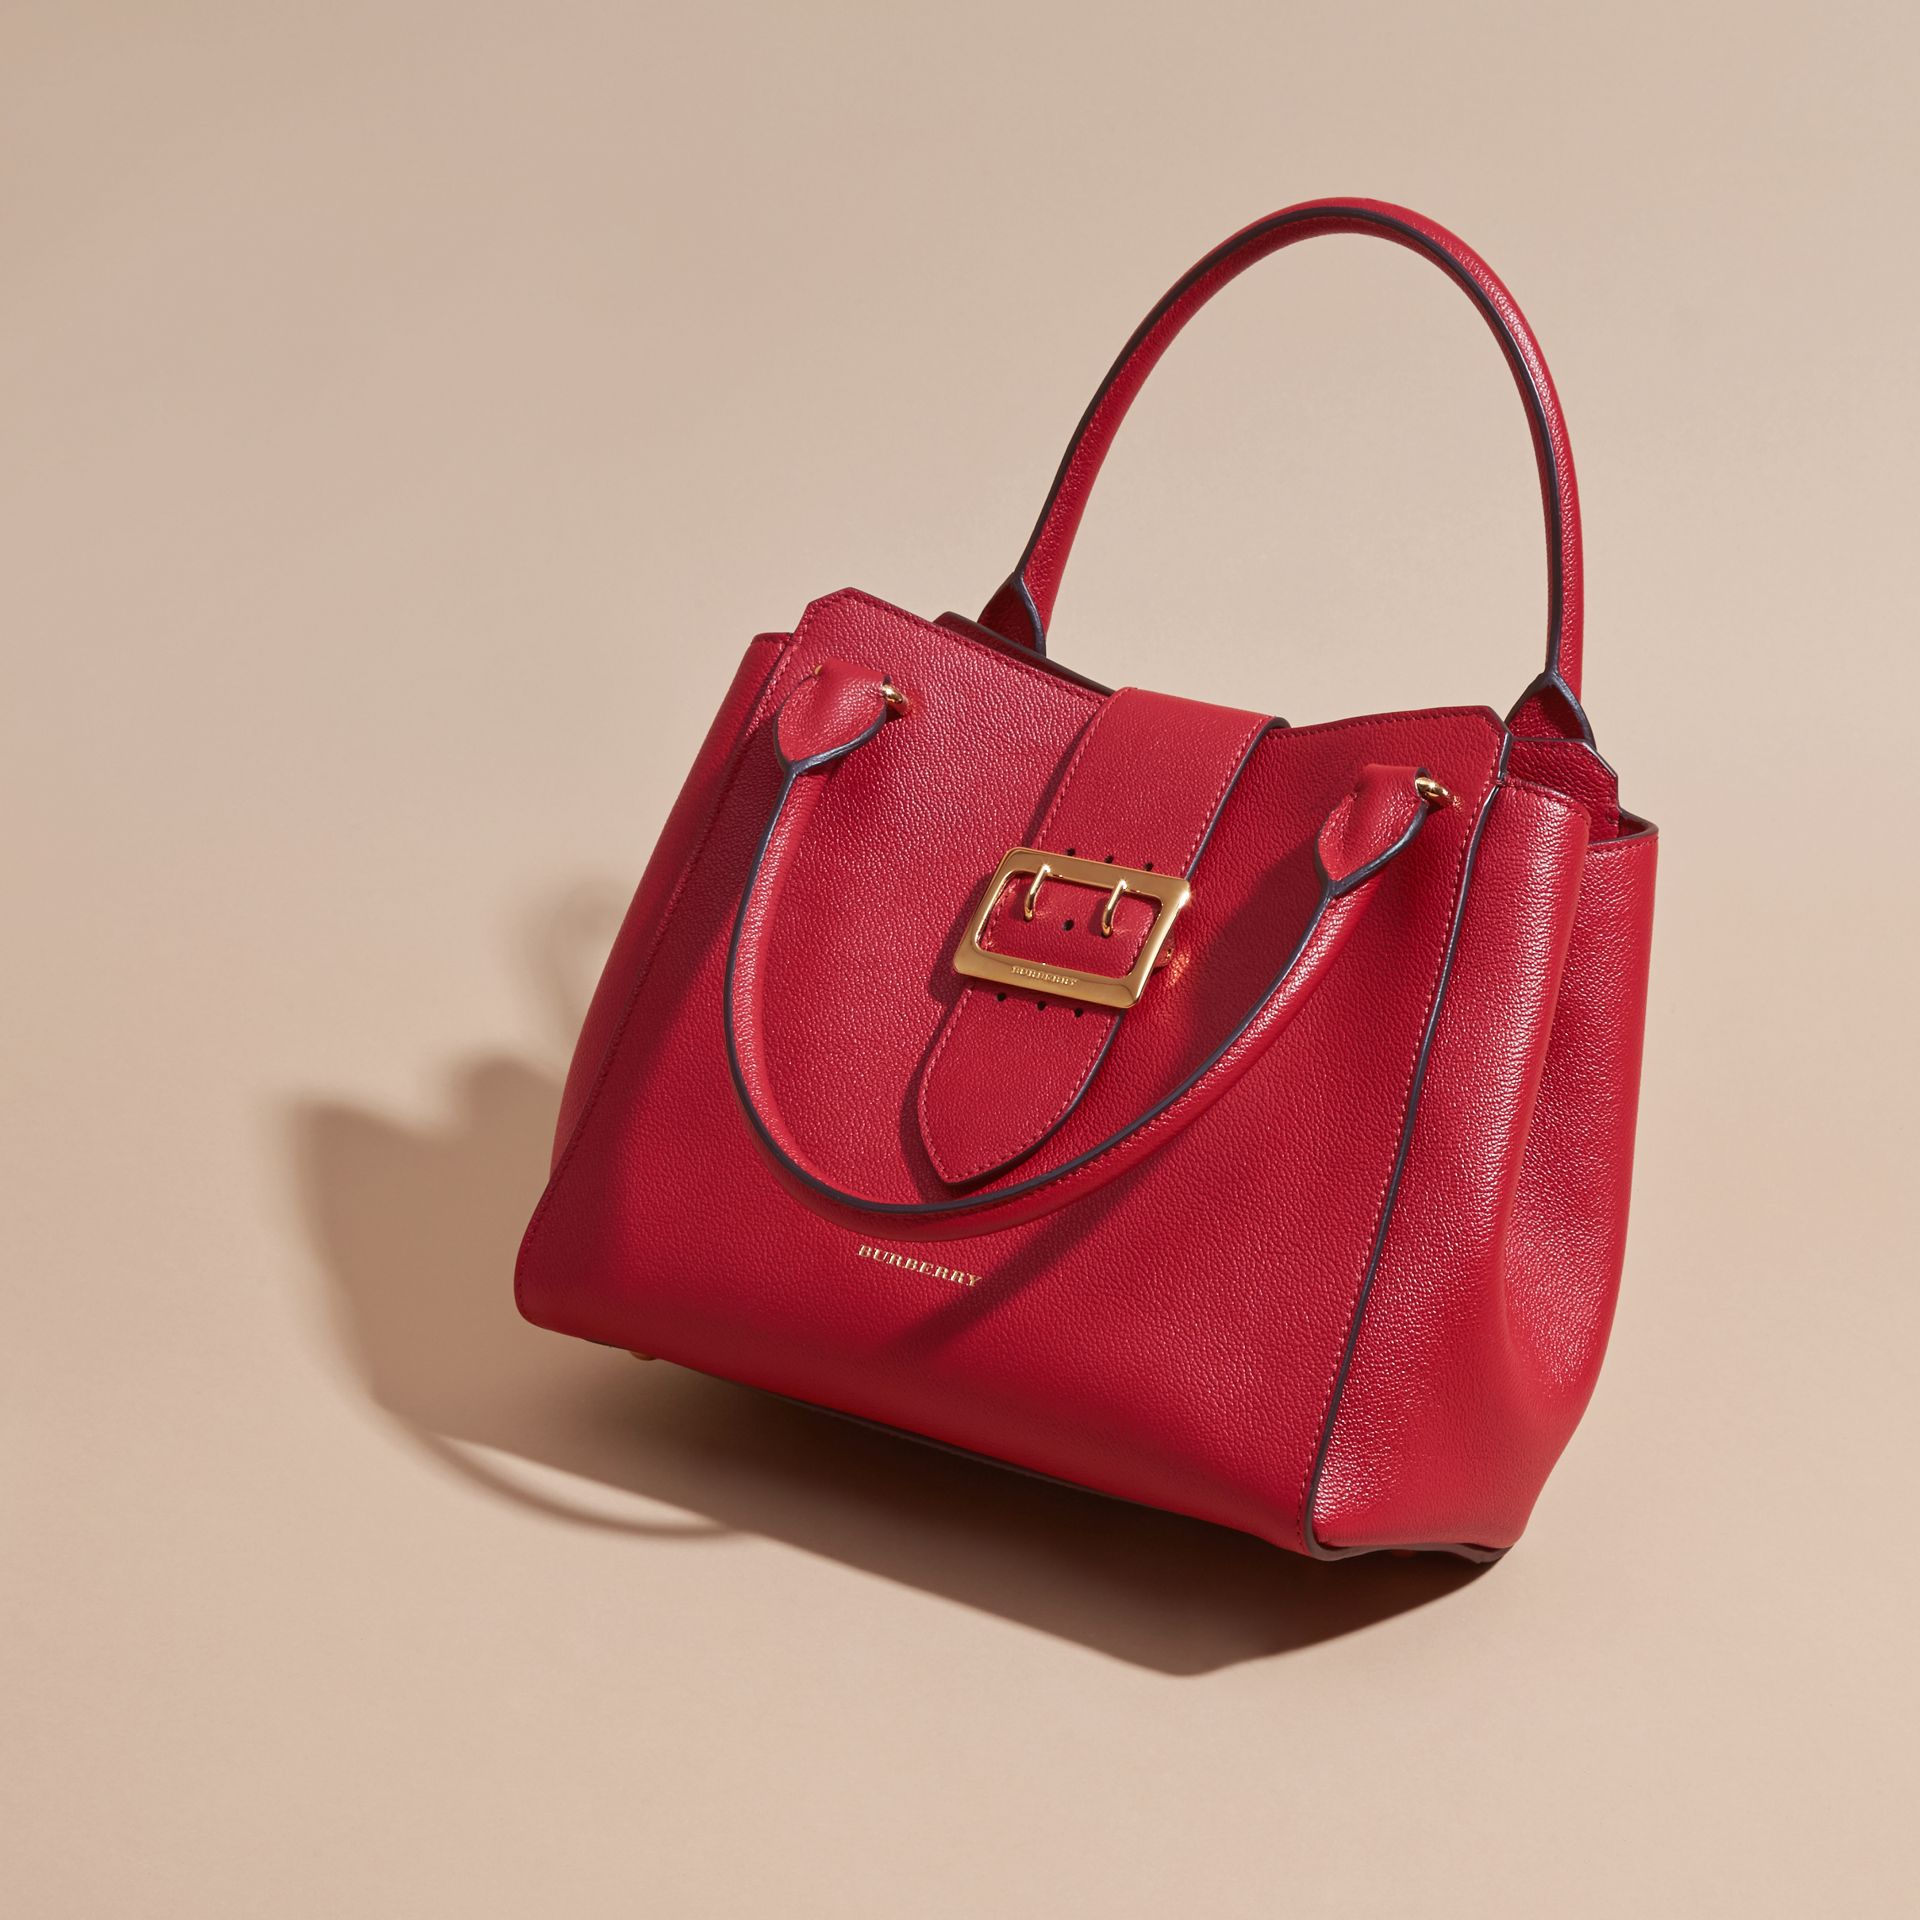 Parade red The Medium Buckle Tote in Grainy Leather Parade Red - gallery image 8